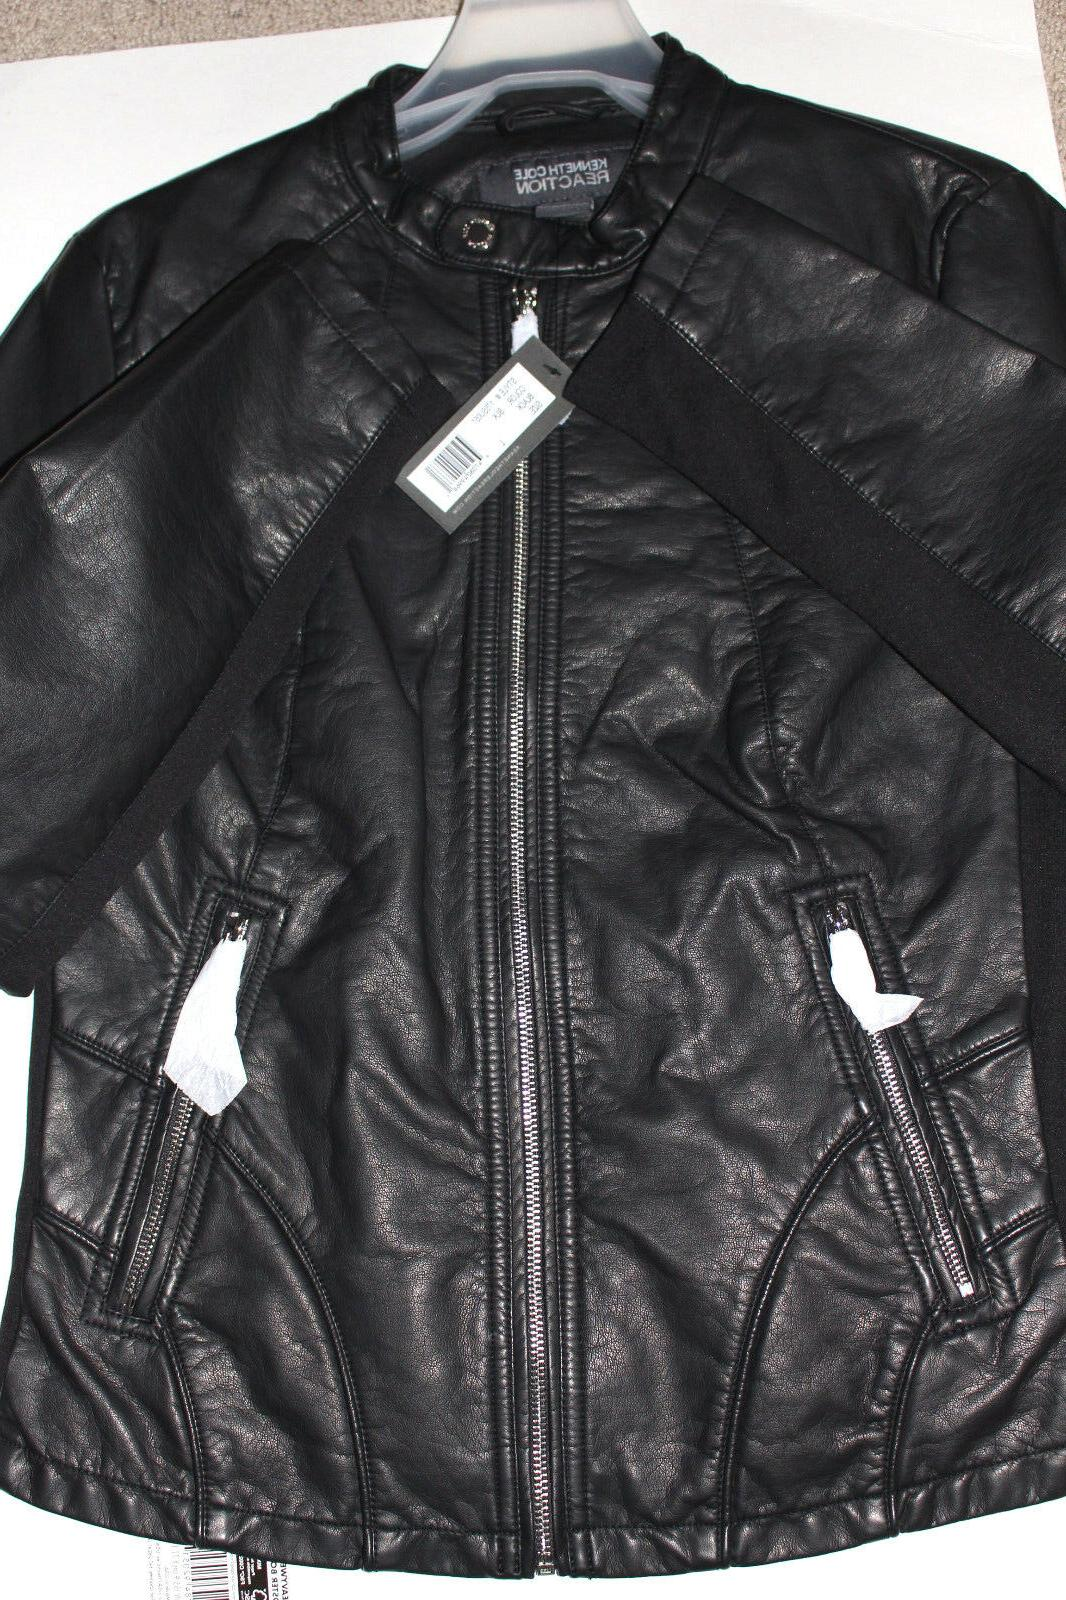 NWT Kenneth Cole Reaction Ladies' Leather Jackets, style Size